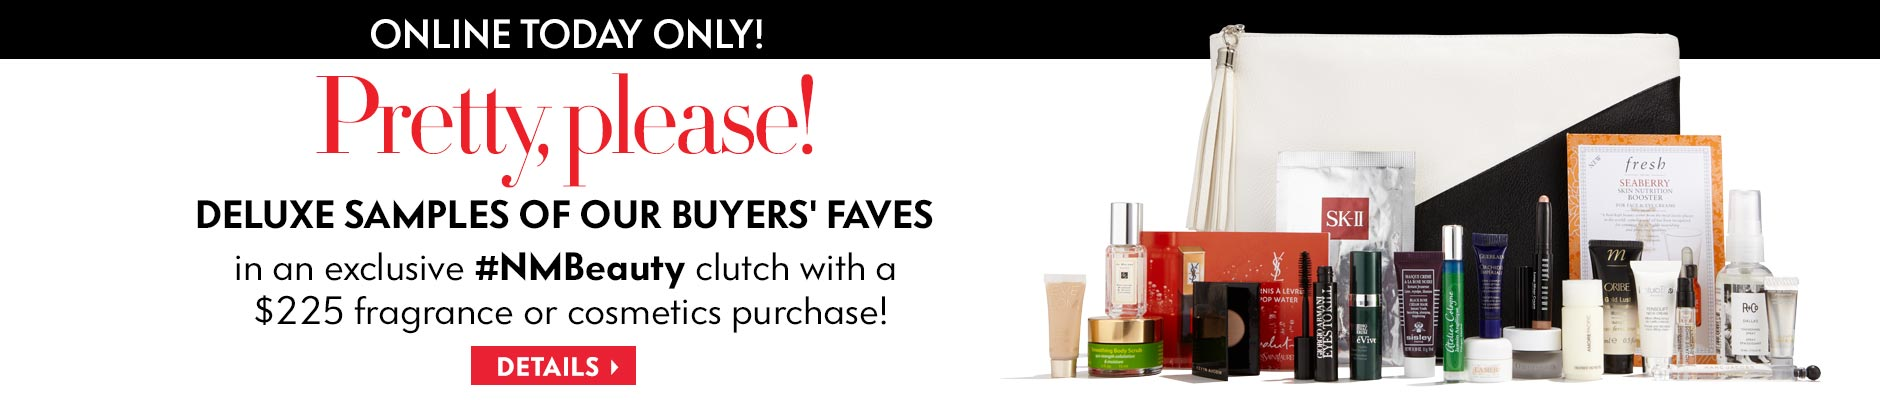 The Gift of Beauty: Free clutch and samples with purchase!